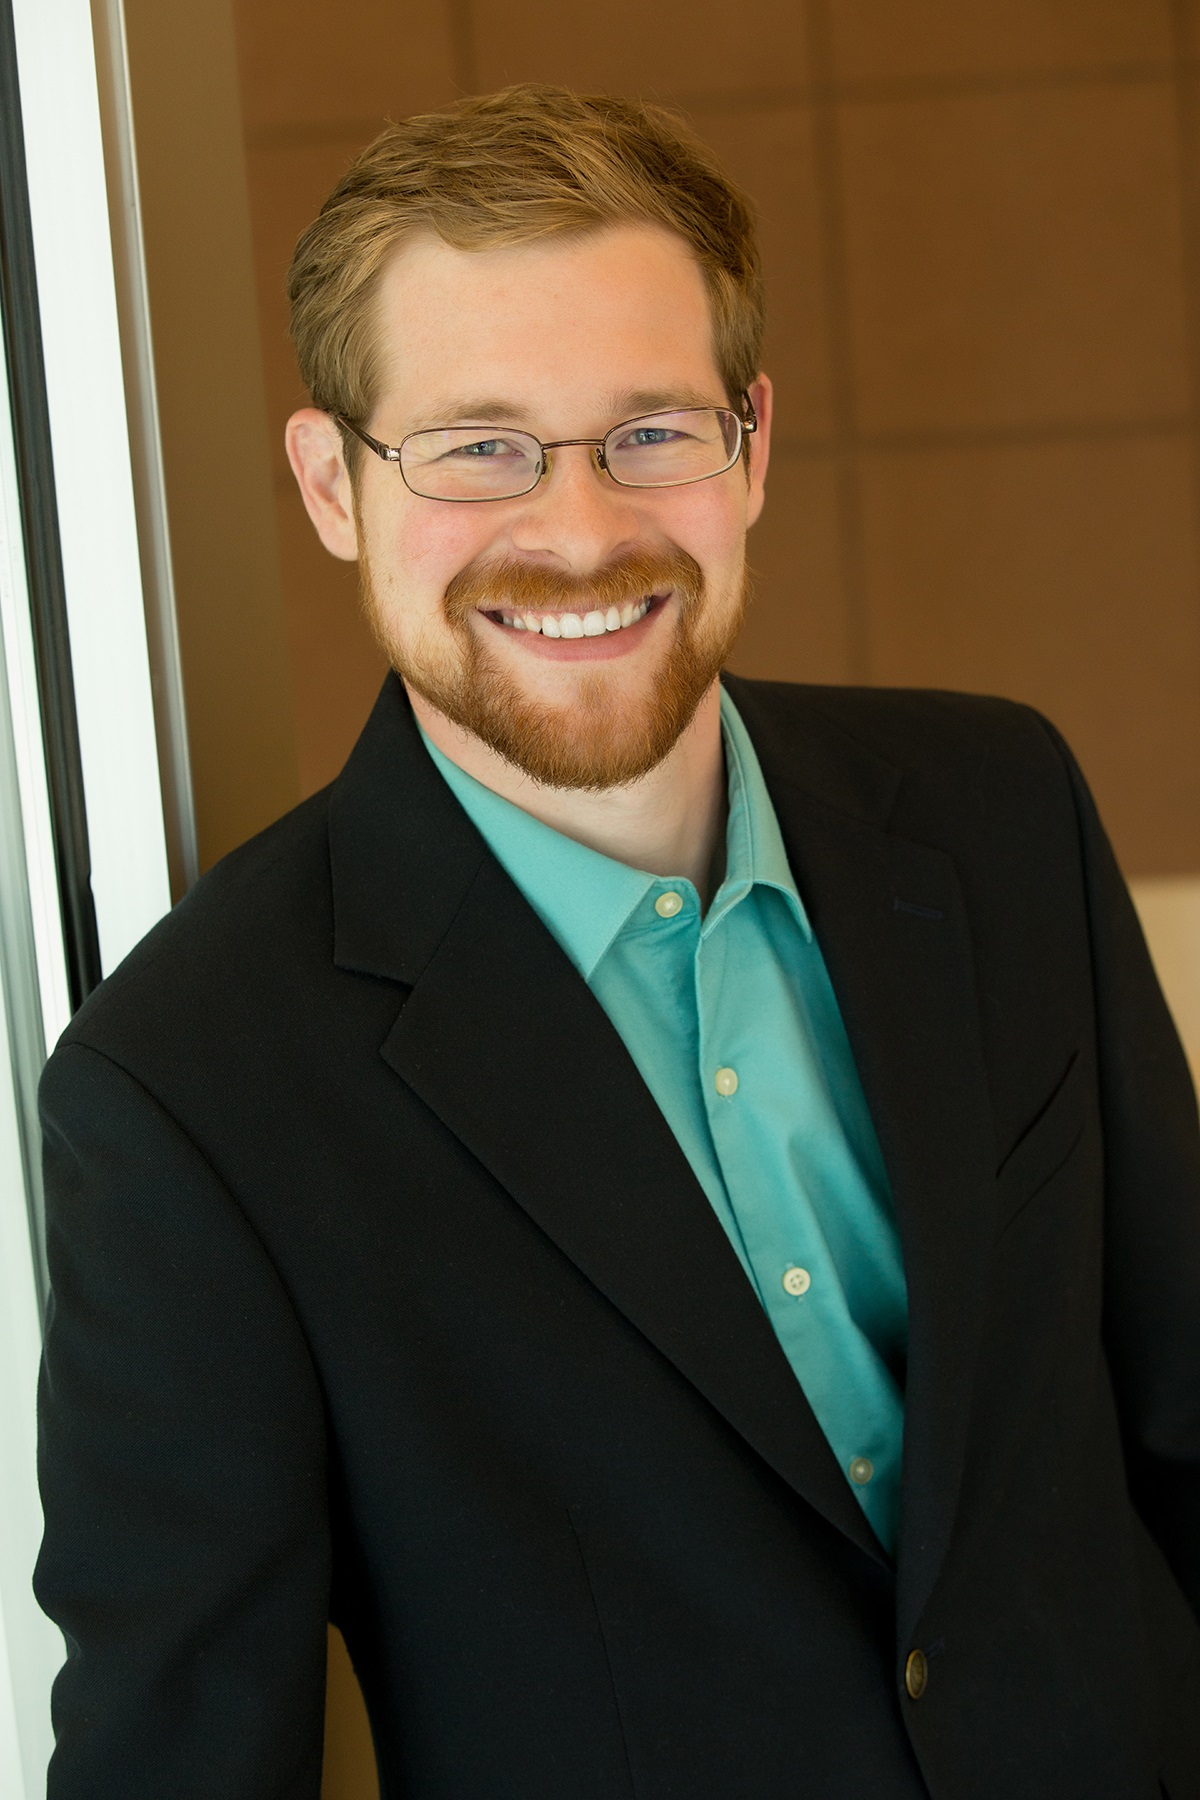 Copy of Ben Bader, Senior Hydrogeologist at Lytle Water Solutions